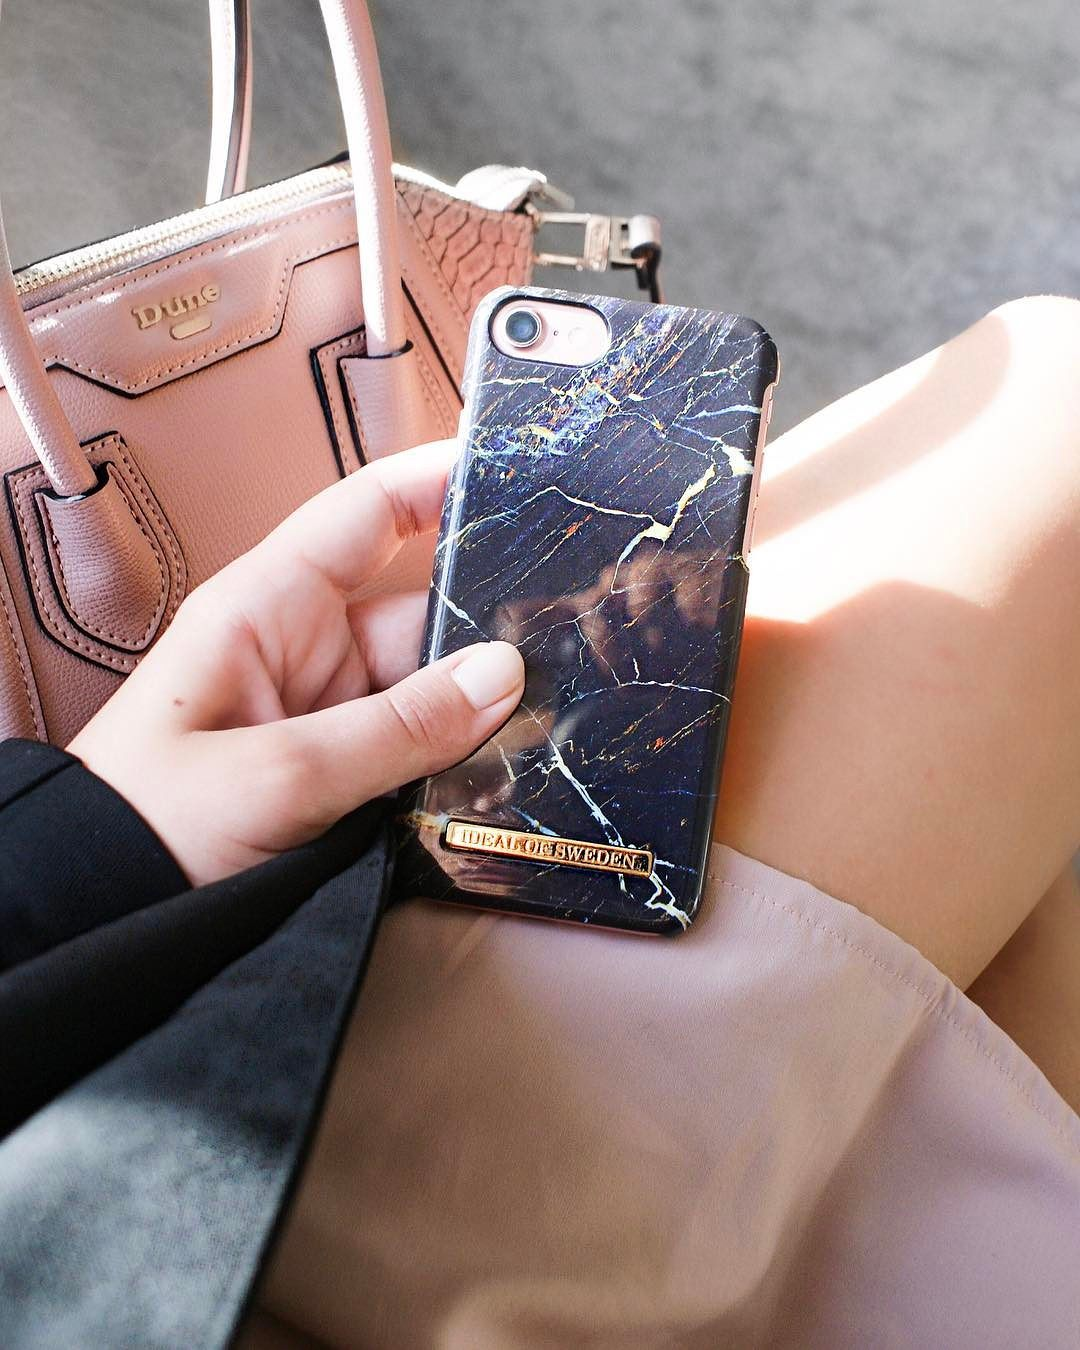 Port Laurent Marble by lovely  alexandra.em - Fashion case phone cases  iphone inspiration iDeal of Sweden  marble  black  blue  gold  fashion   inspo  iphone ... 407ddc999383e